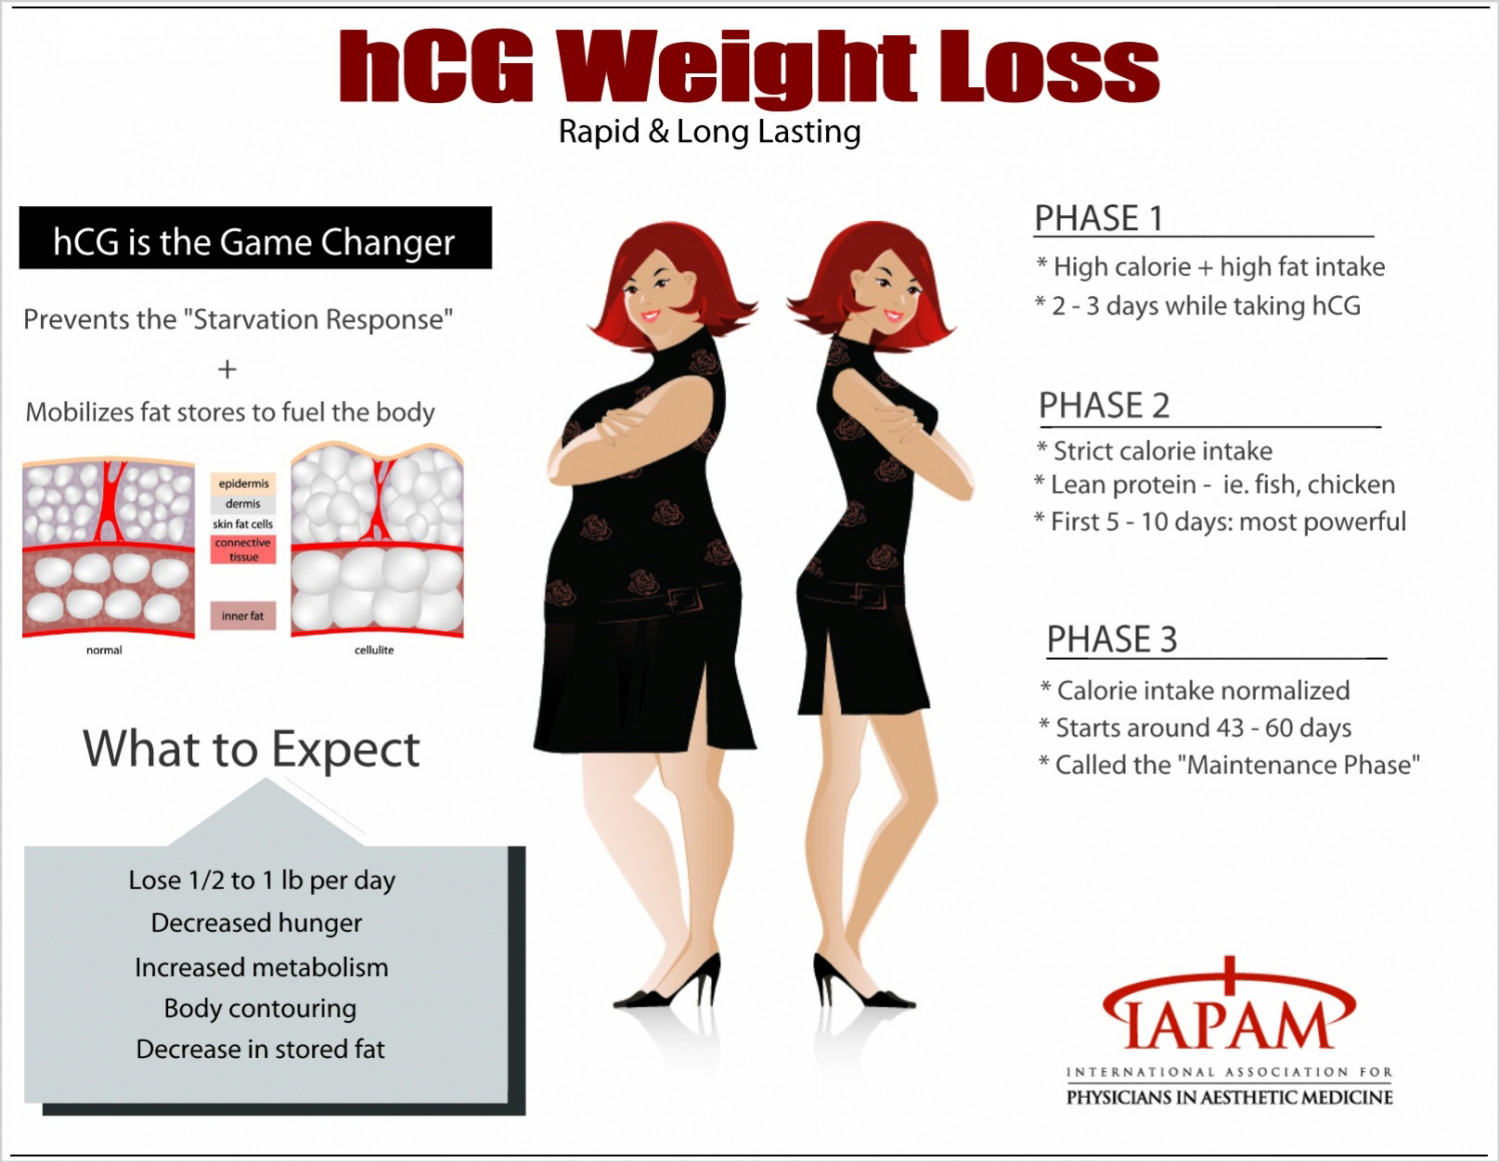 hcg Weight Loss Infographic